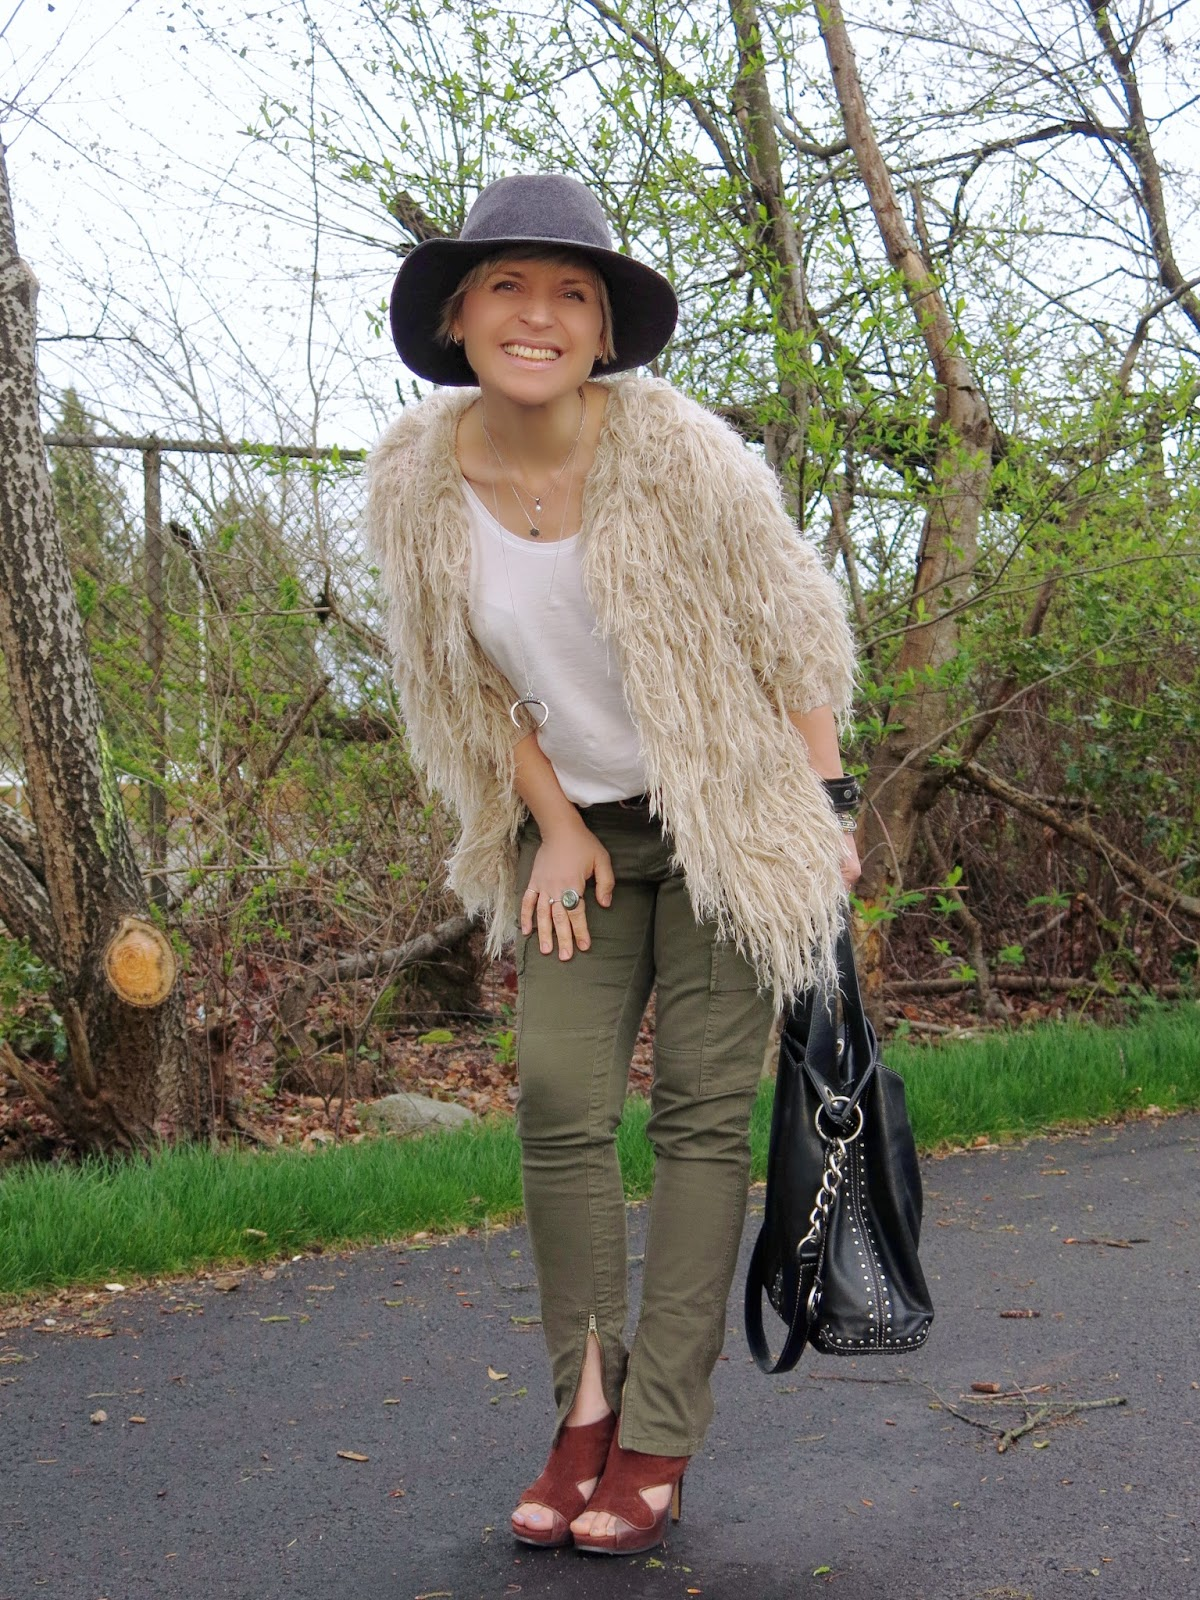 styling skinny cargo pants with a shaggy cardigan and floppy hat